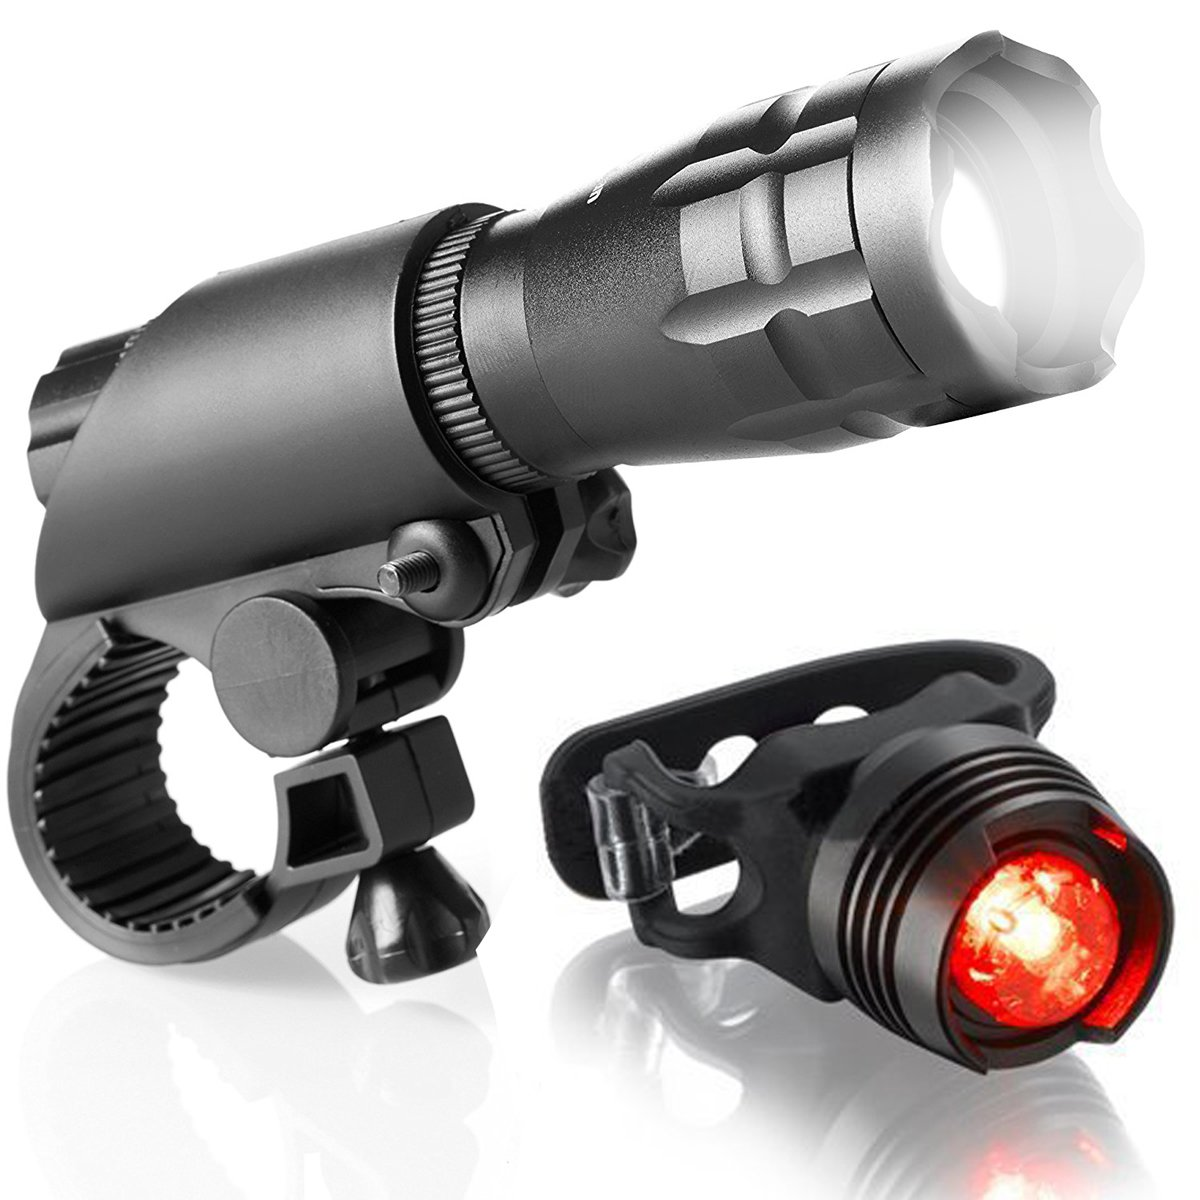 ThreeMay Bike Light Set Powerful Bright LED Front Lights Free Tail Light Easy to Install for Kids Men Women Road Cycling Safety Flashlight Bicycle Headlight